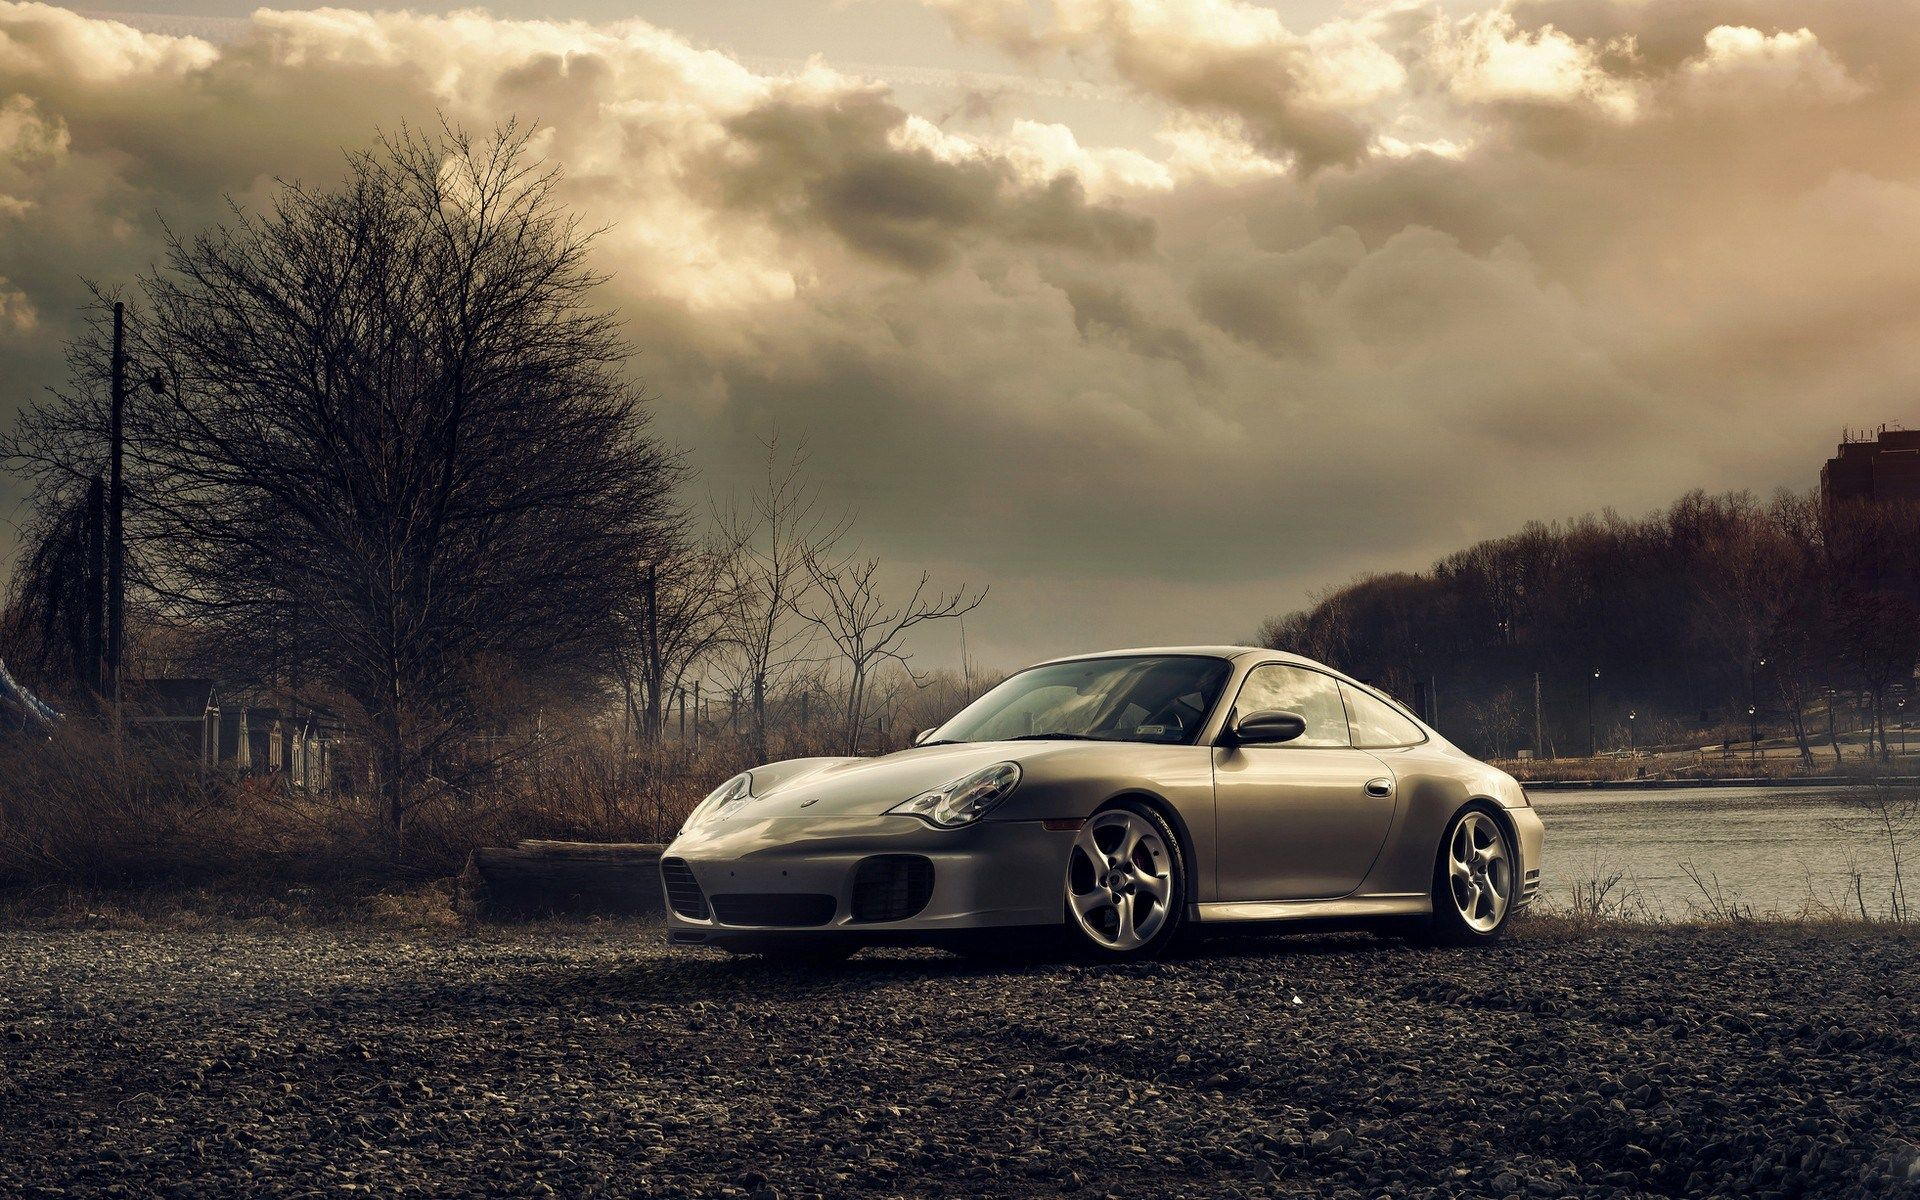 Porsche Wallpaper Free Xwf Porsche Cars Porsche 911 Car Wallpapers